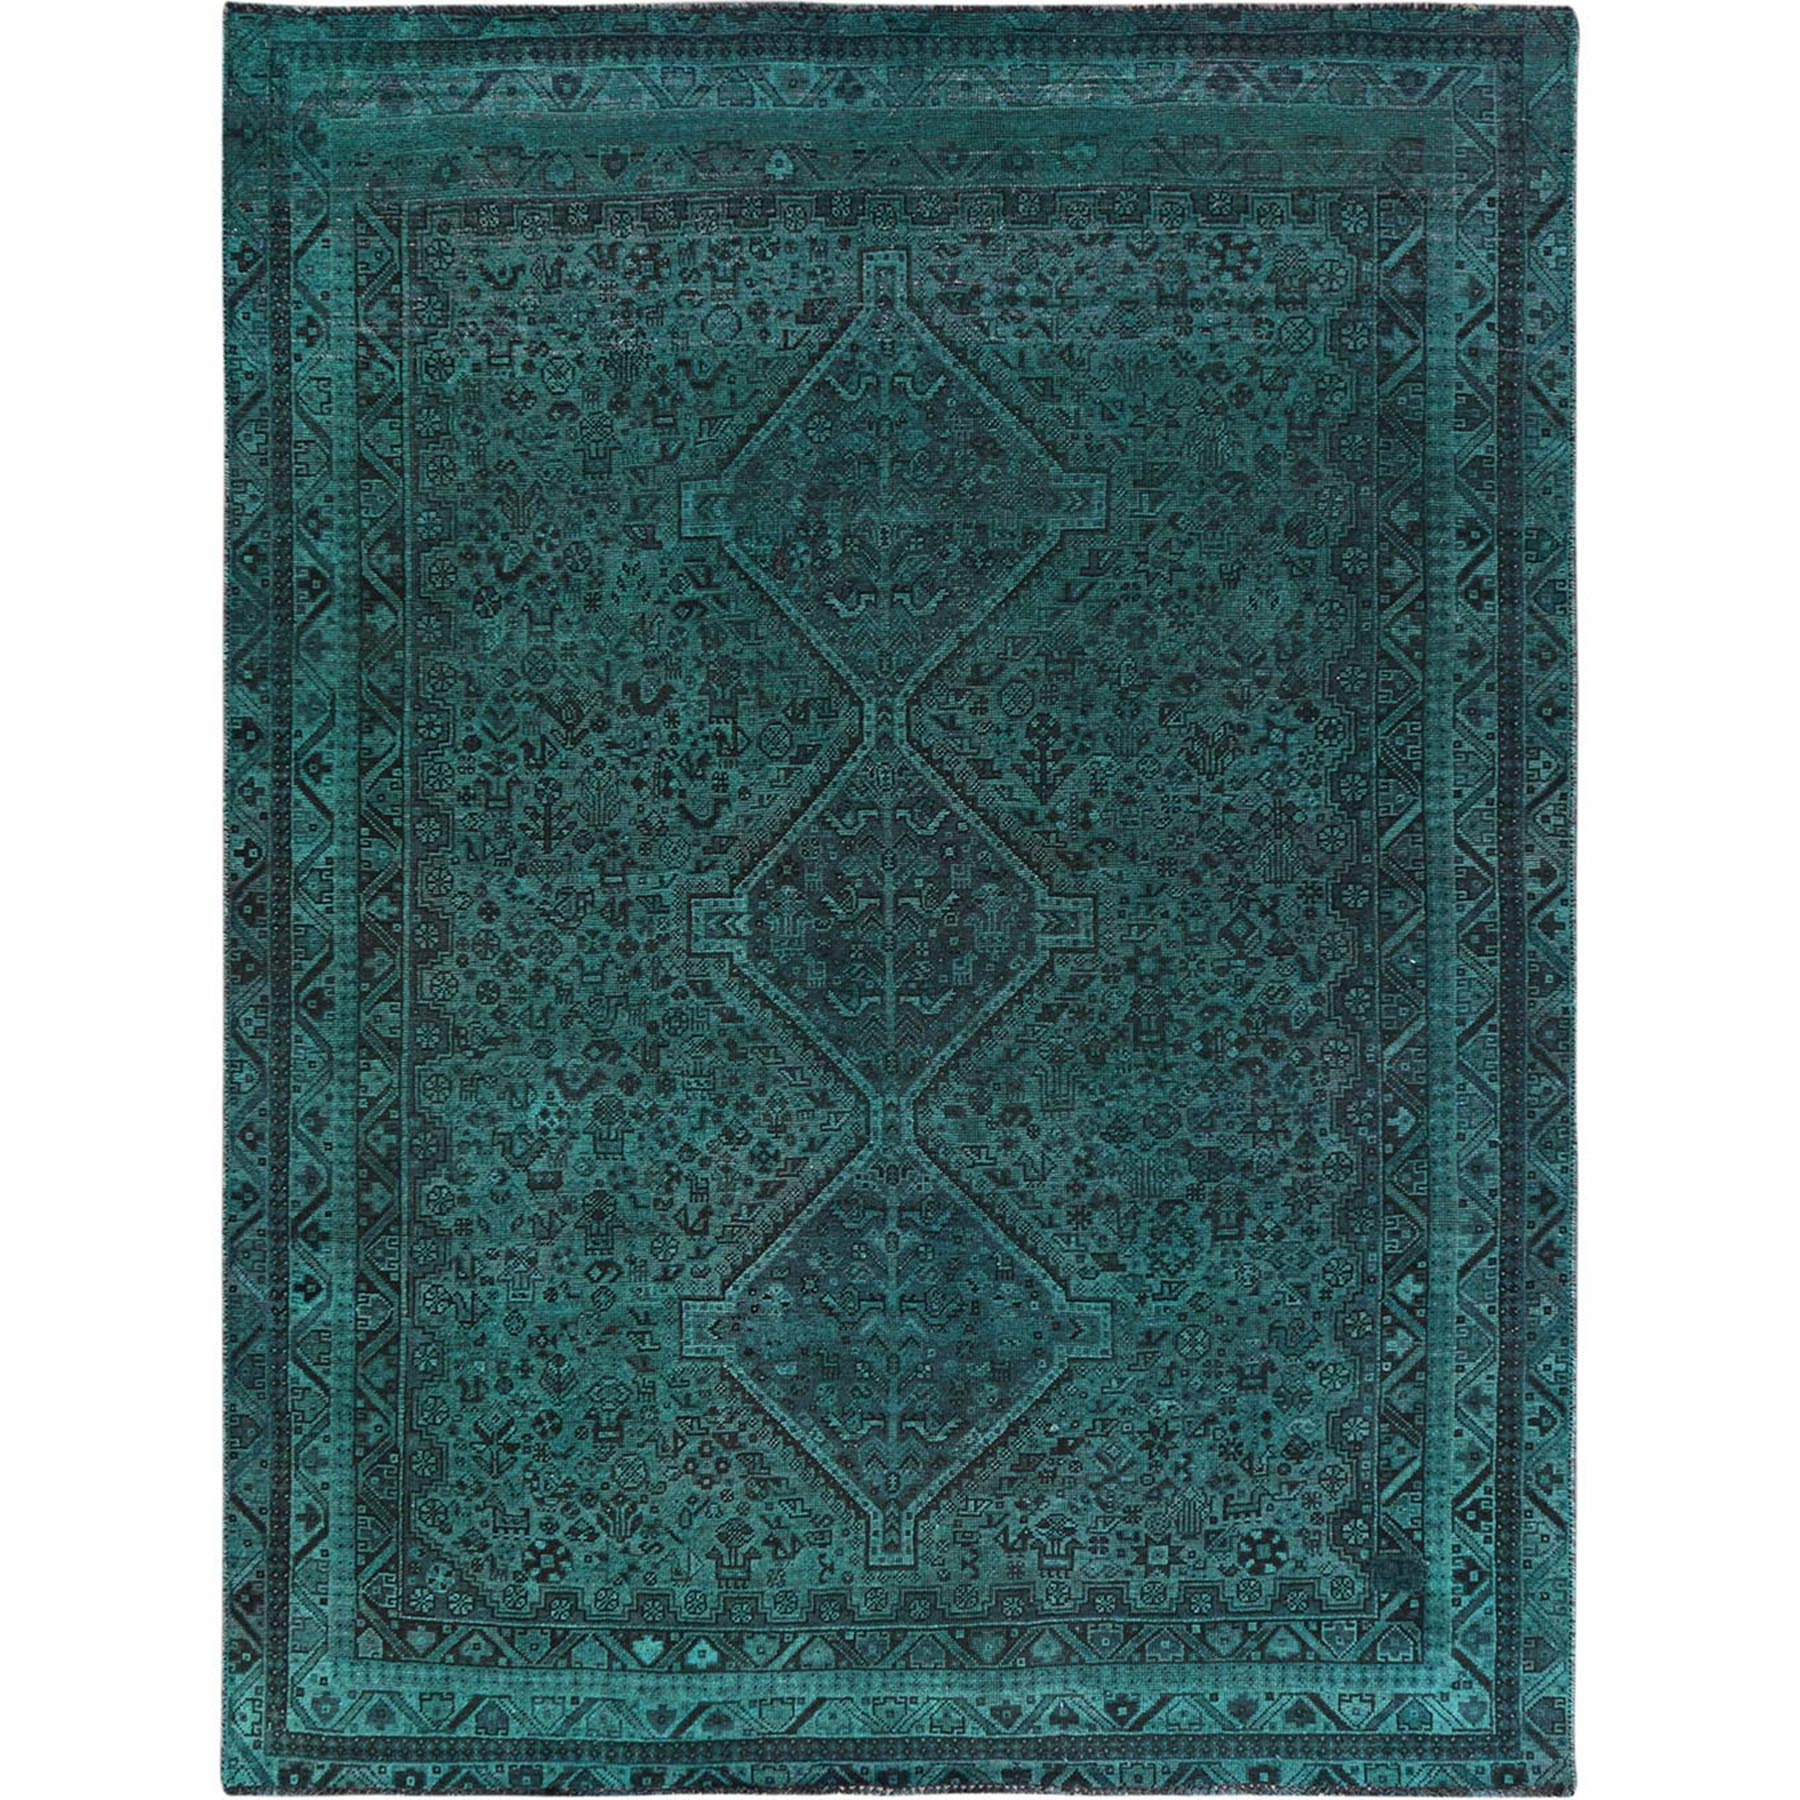 Fetneh Collection And Vintage Overdyed Collection Hand Knotted Green Rug No: 1122238